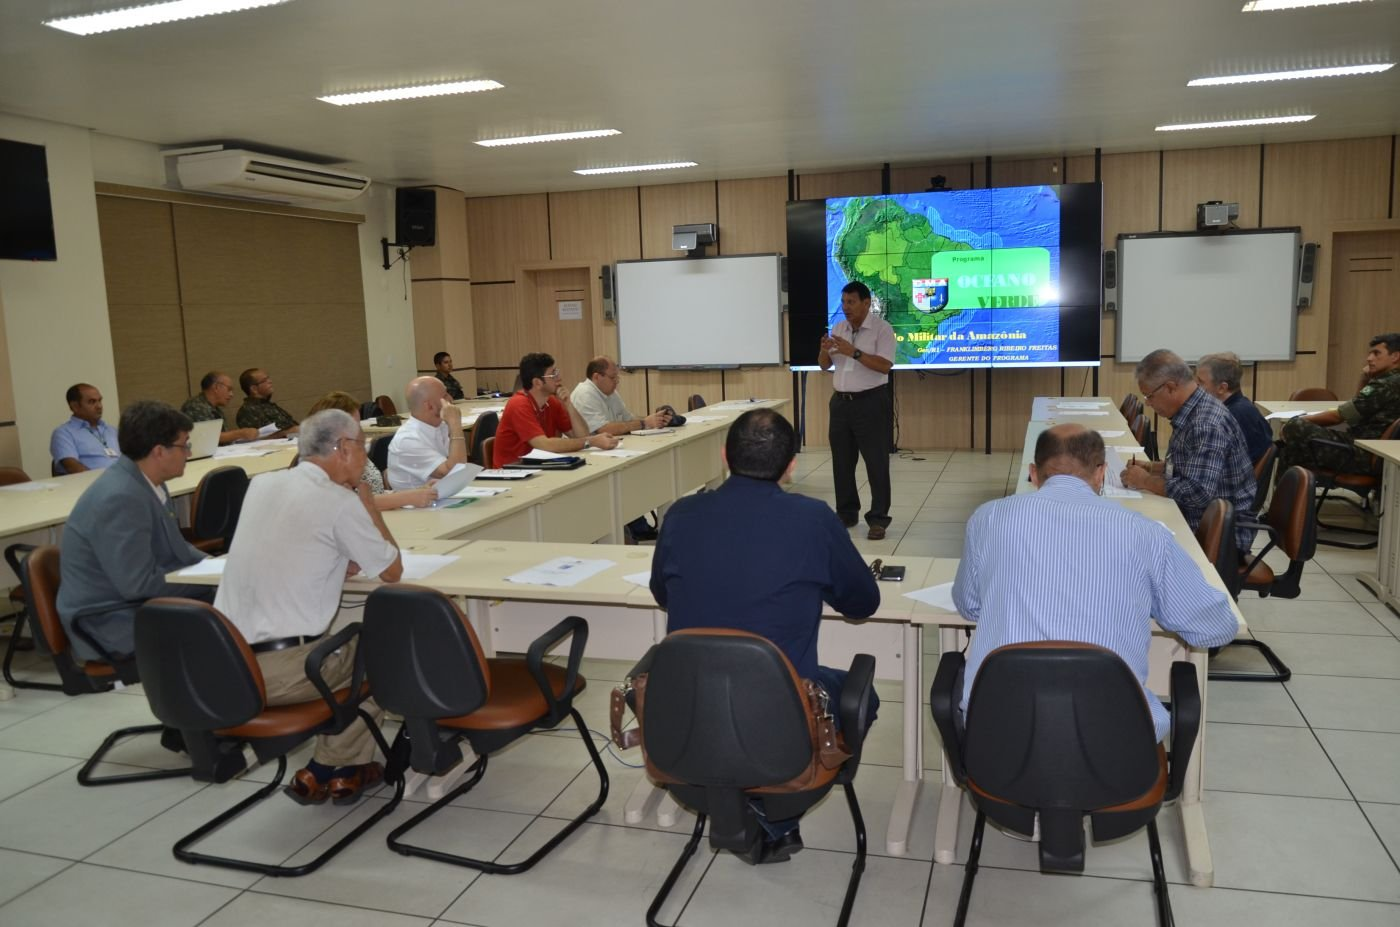 Brazilian Army to Support Scientific Research in the Amazon